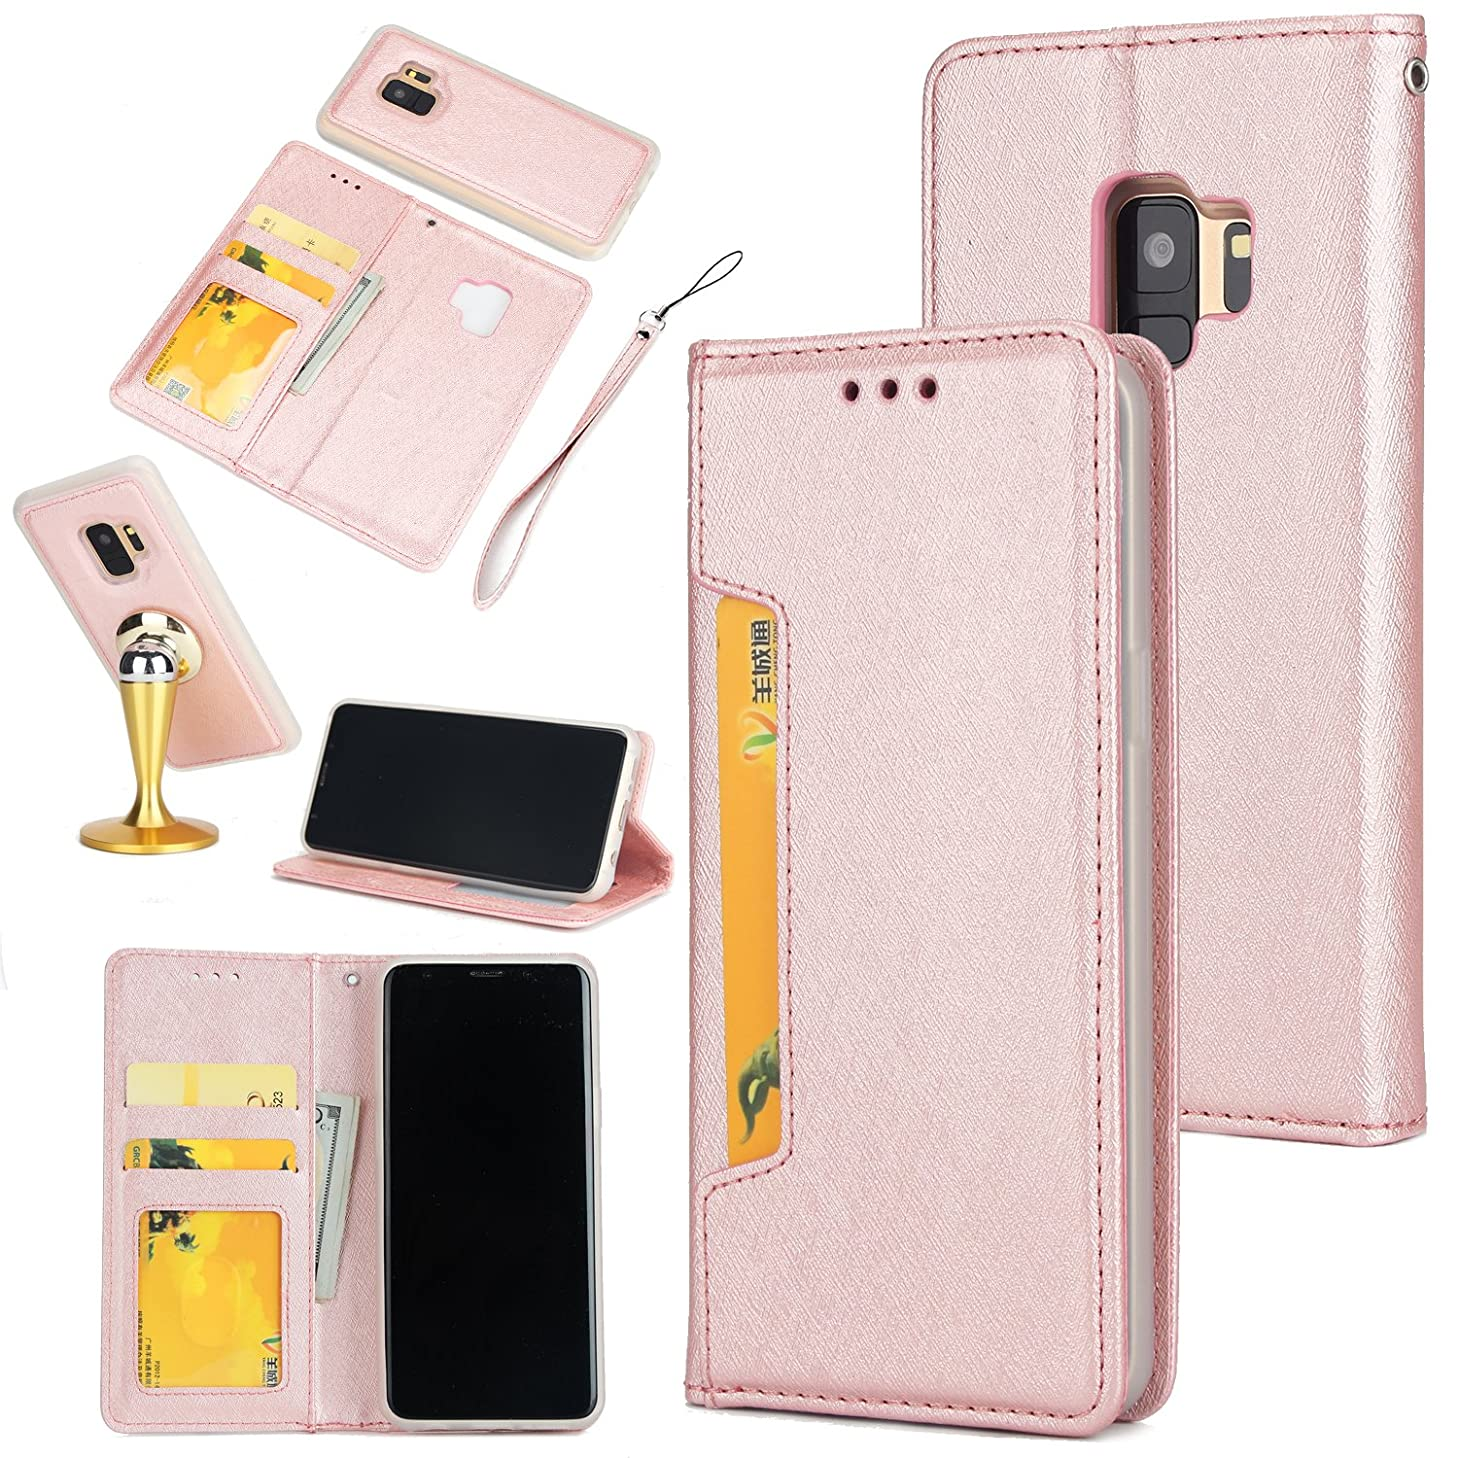 Gostyle Samsung Galaxy S9 Plus Case,2 in 1 Detachable Flip Wallet Case with Credit Card Slots,Work with Magnetic Car Mount,PU Leather Protective Cover for Samsung Galaxy S9 Plus,Rose Gold